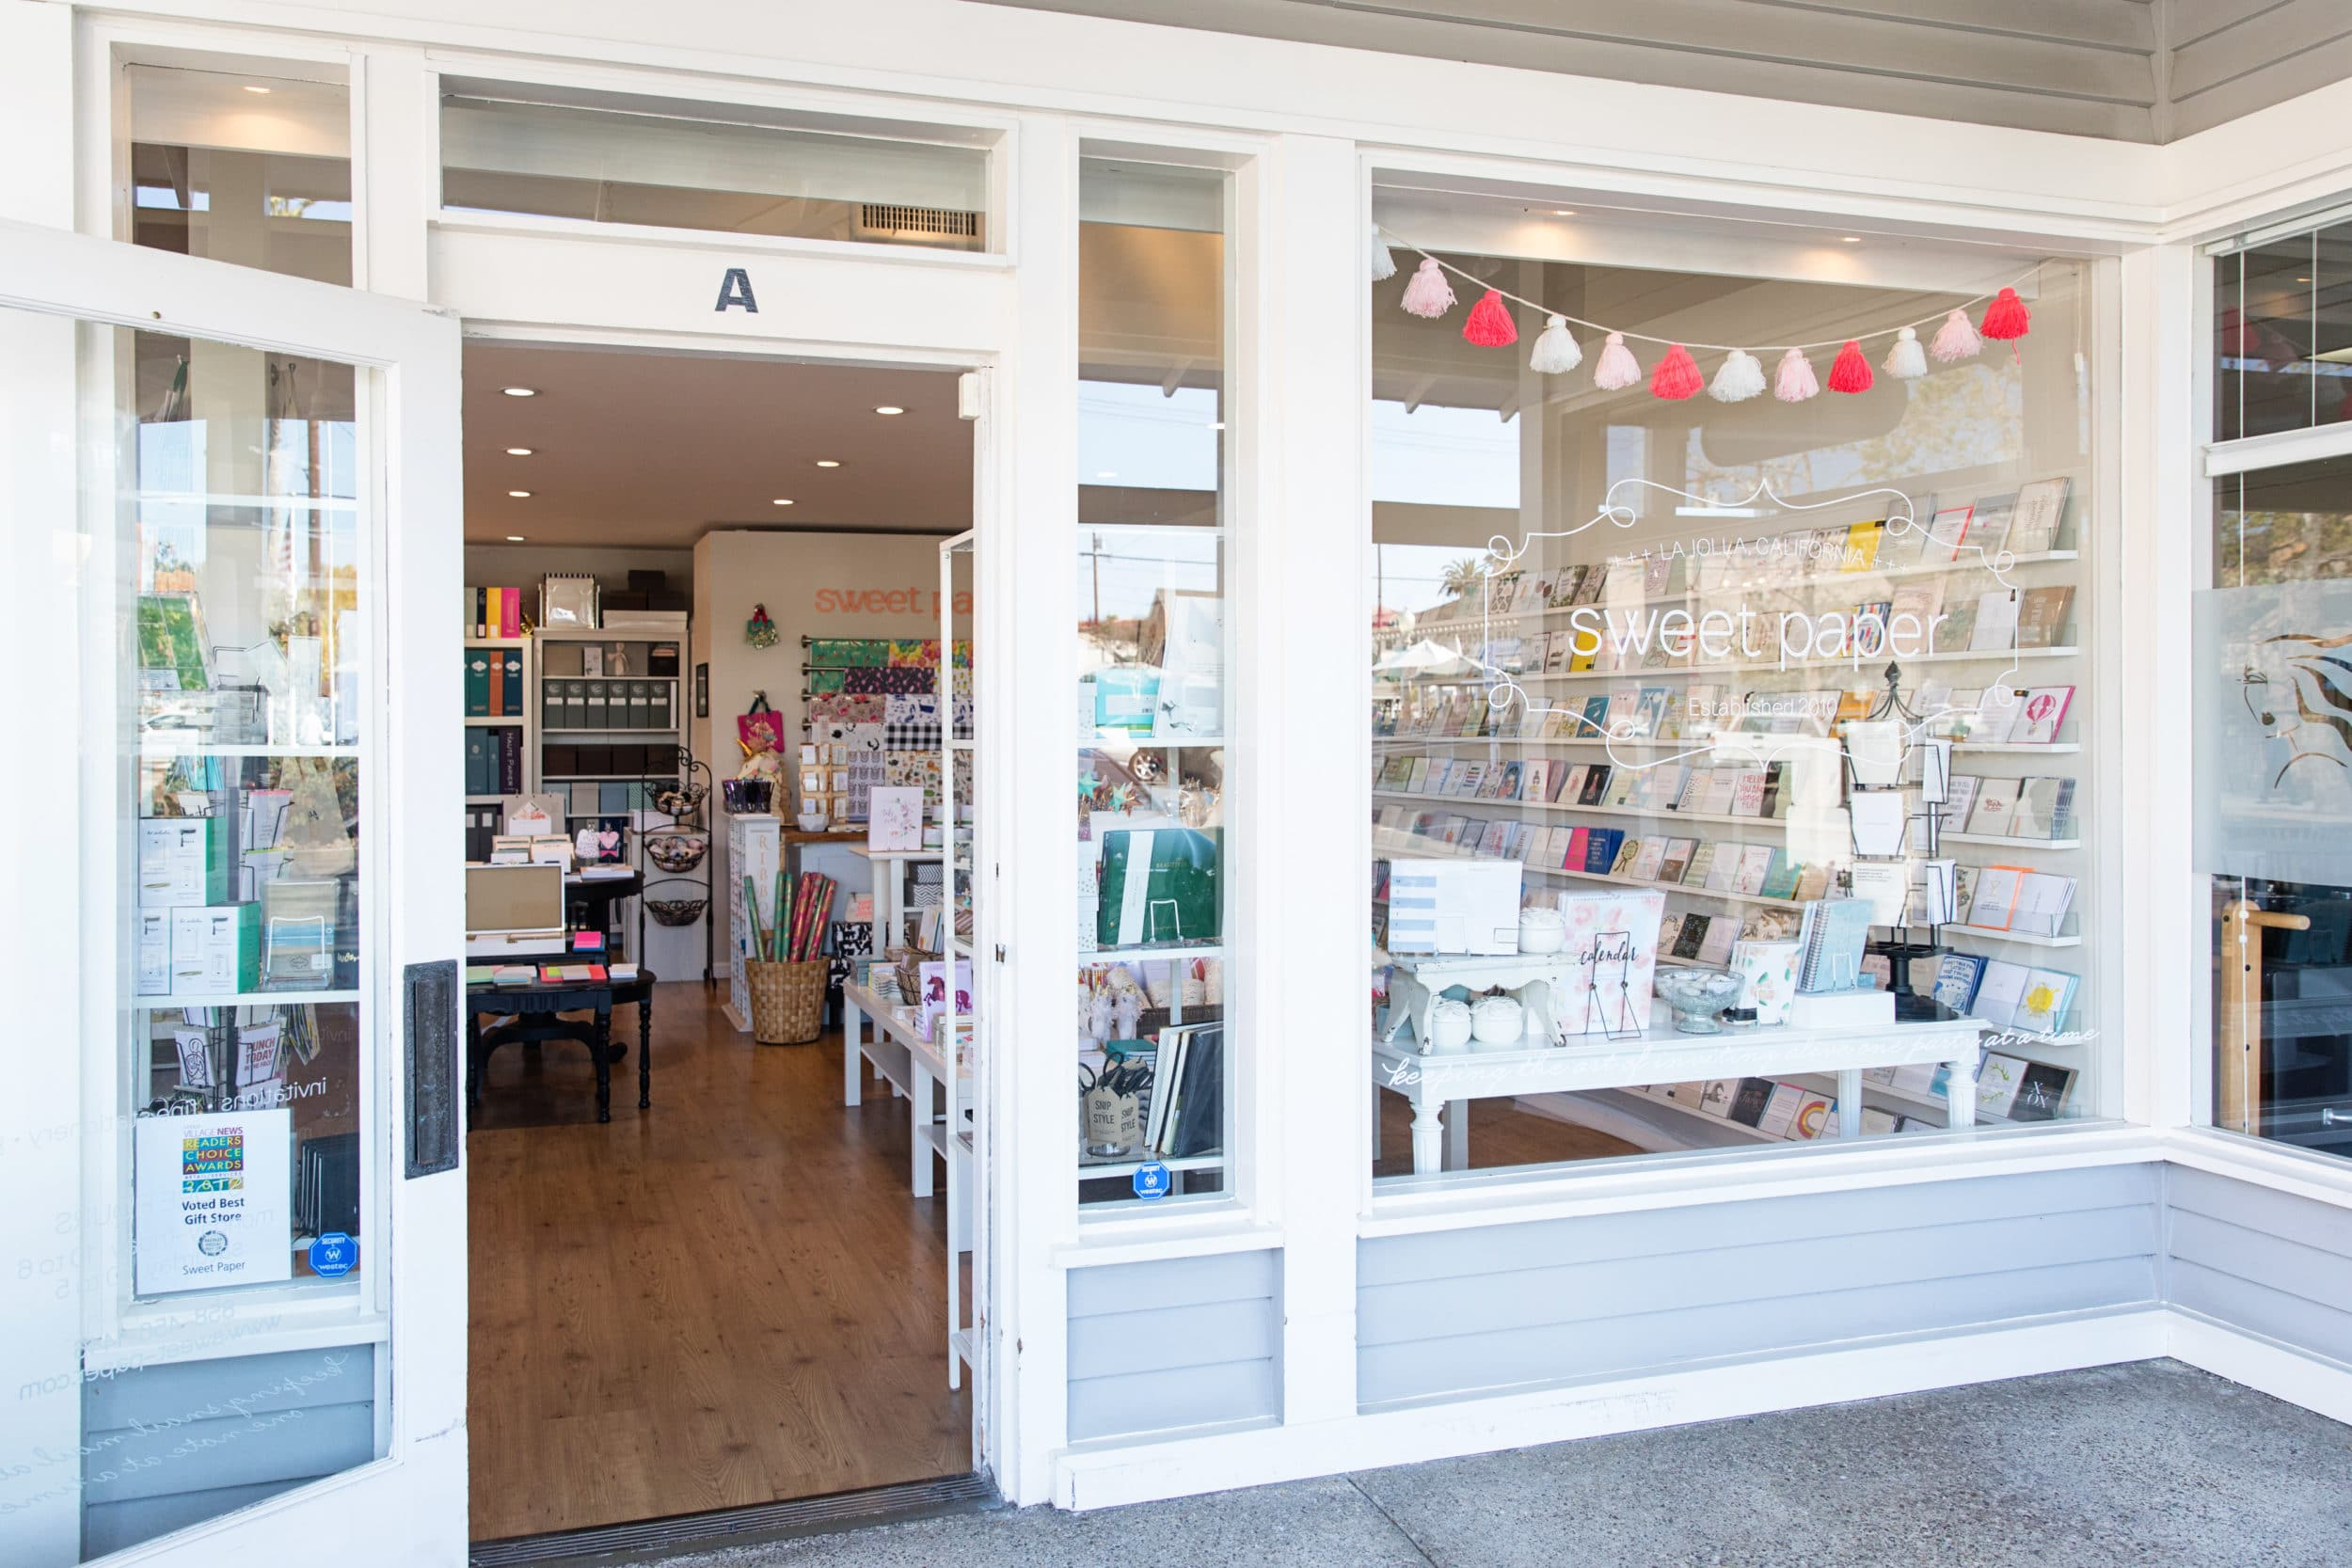 Best La Jolla shopping: Sweet Paper